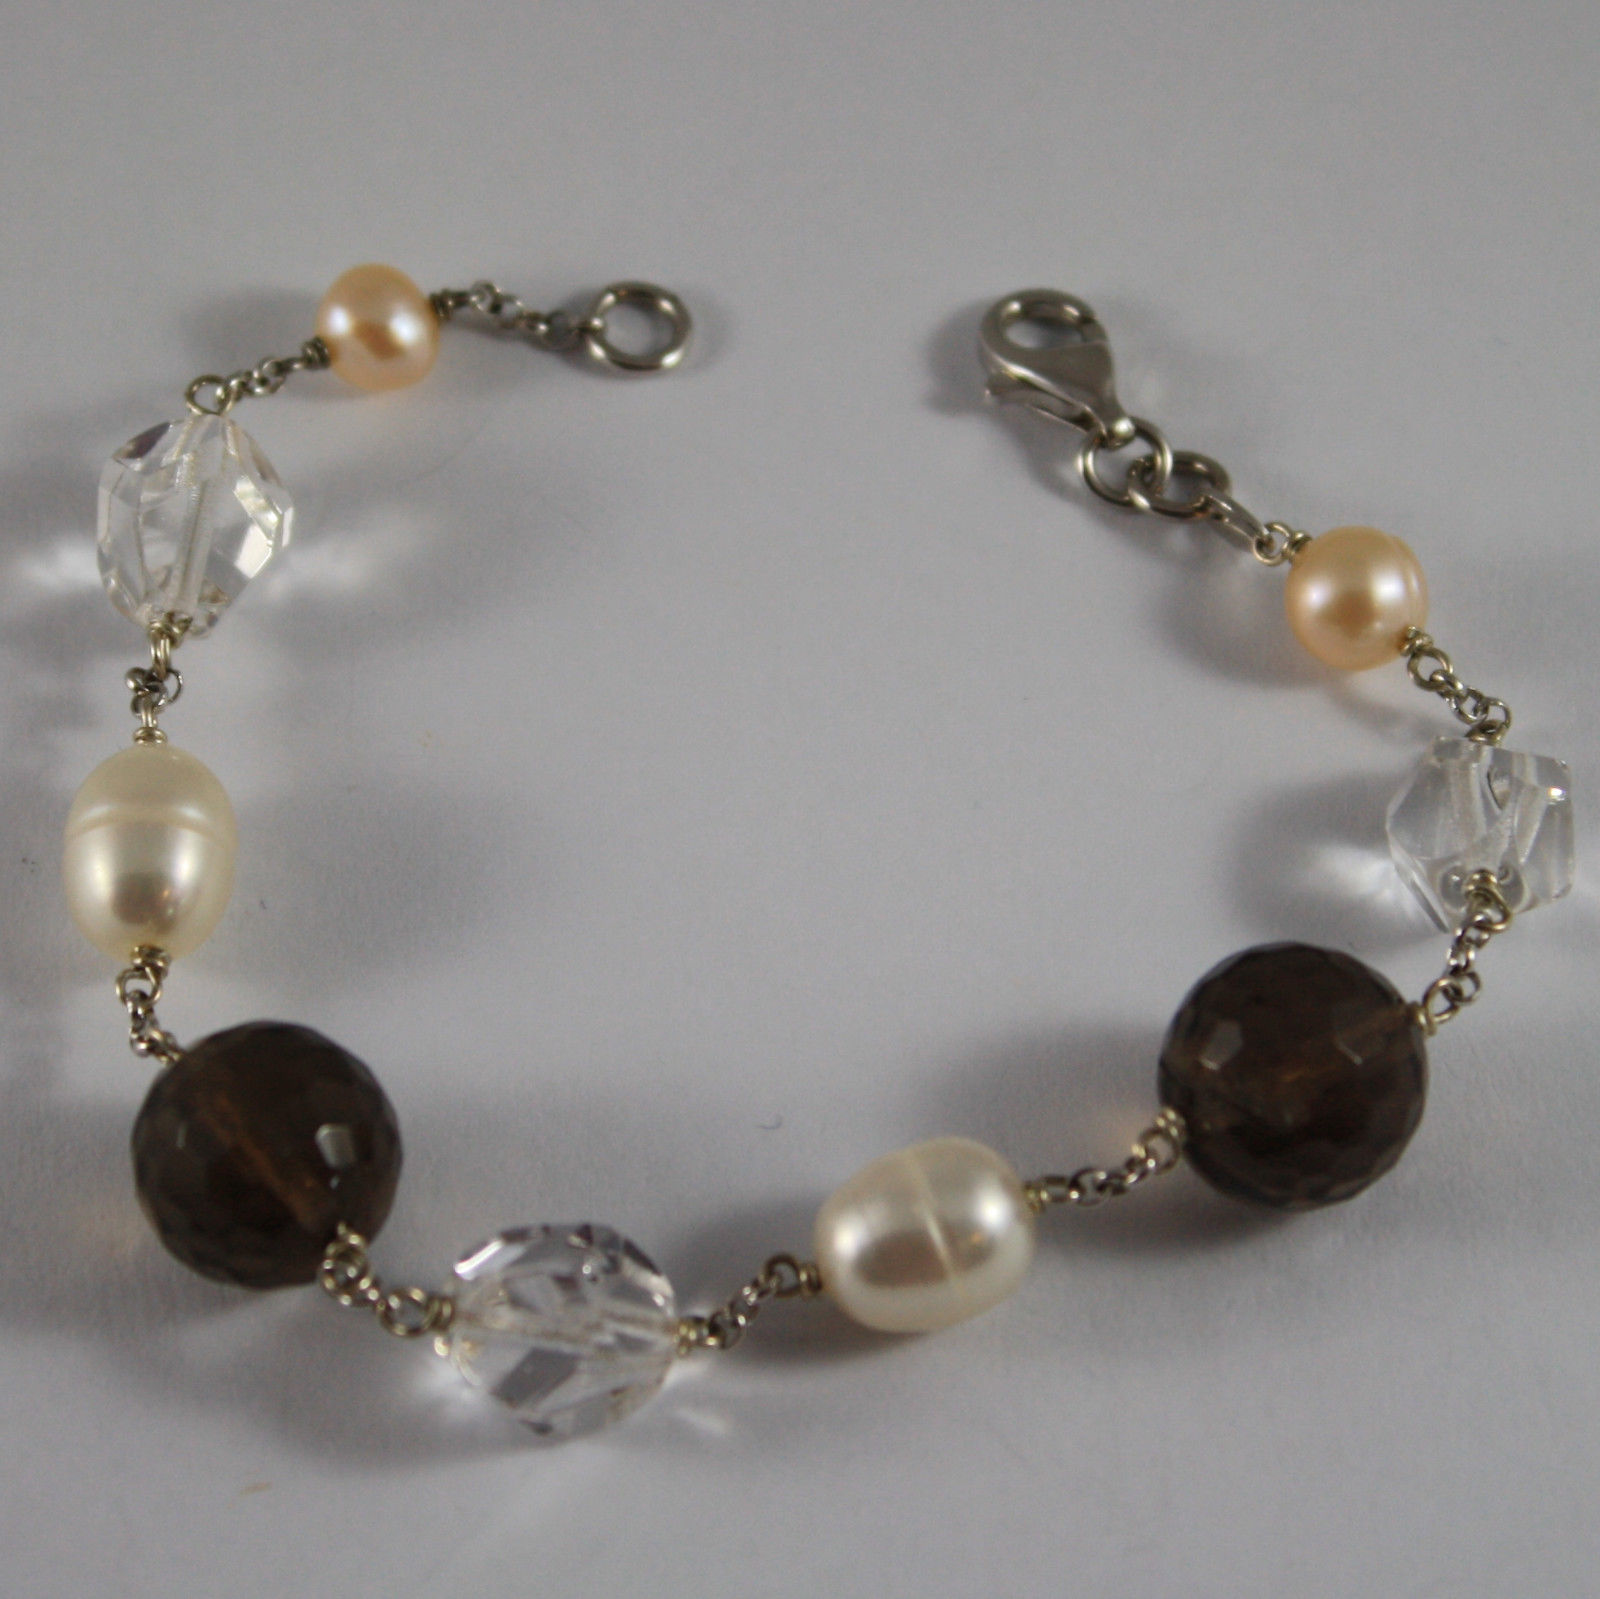 .925 RHODIUM SILVER BRACELET WITH SMOKY QUARTZ, CRYSTALS AND PEARLS